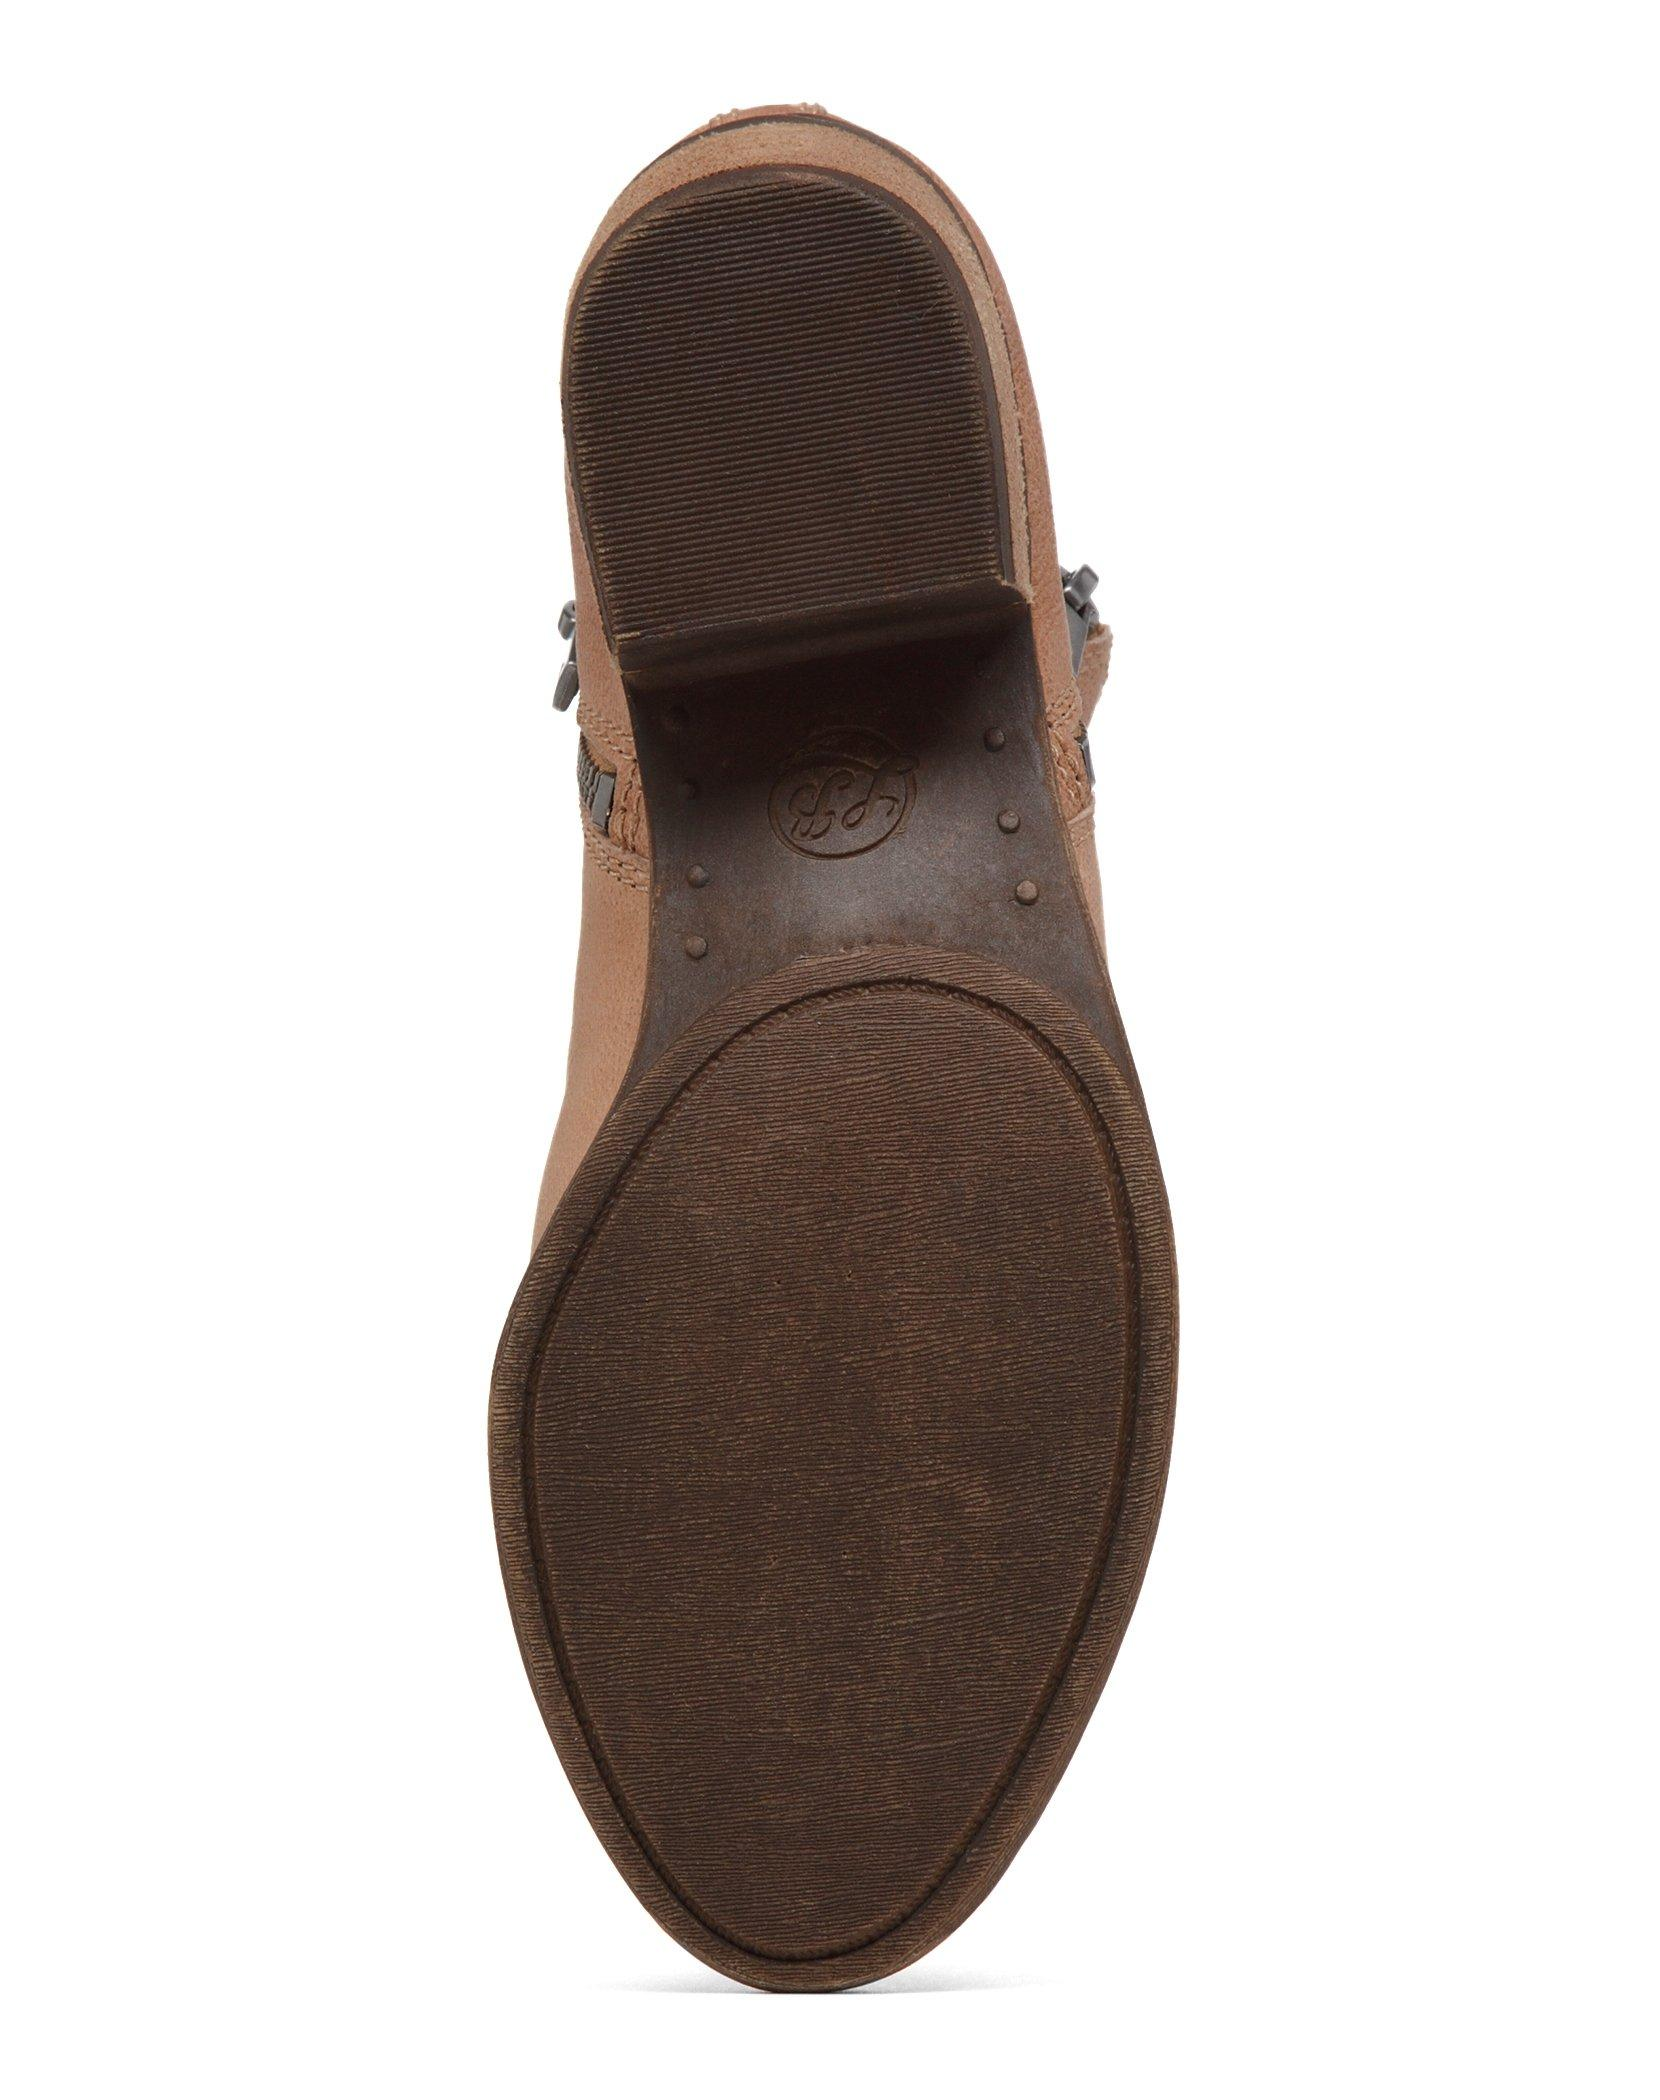 BASEL LEATHER FLAT BOOTIE, image 6